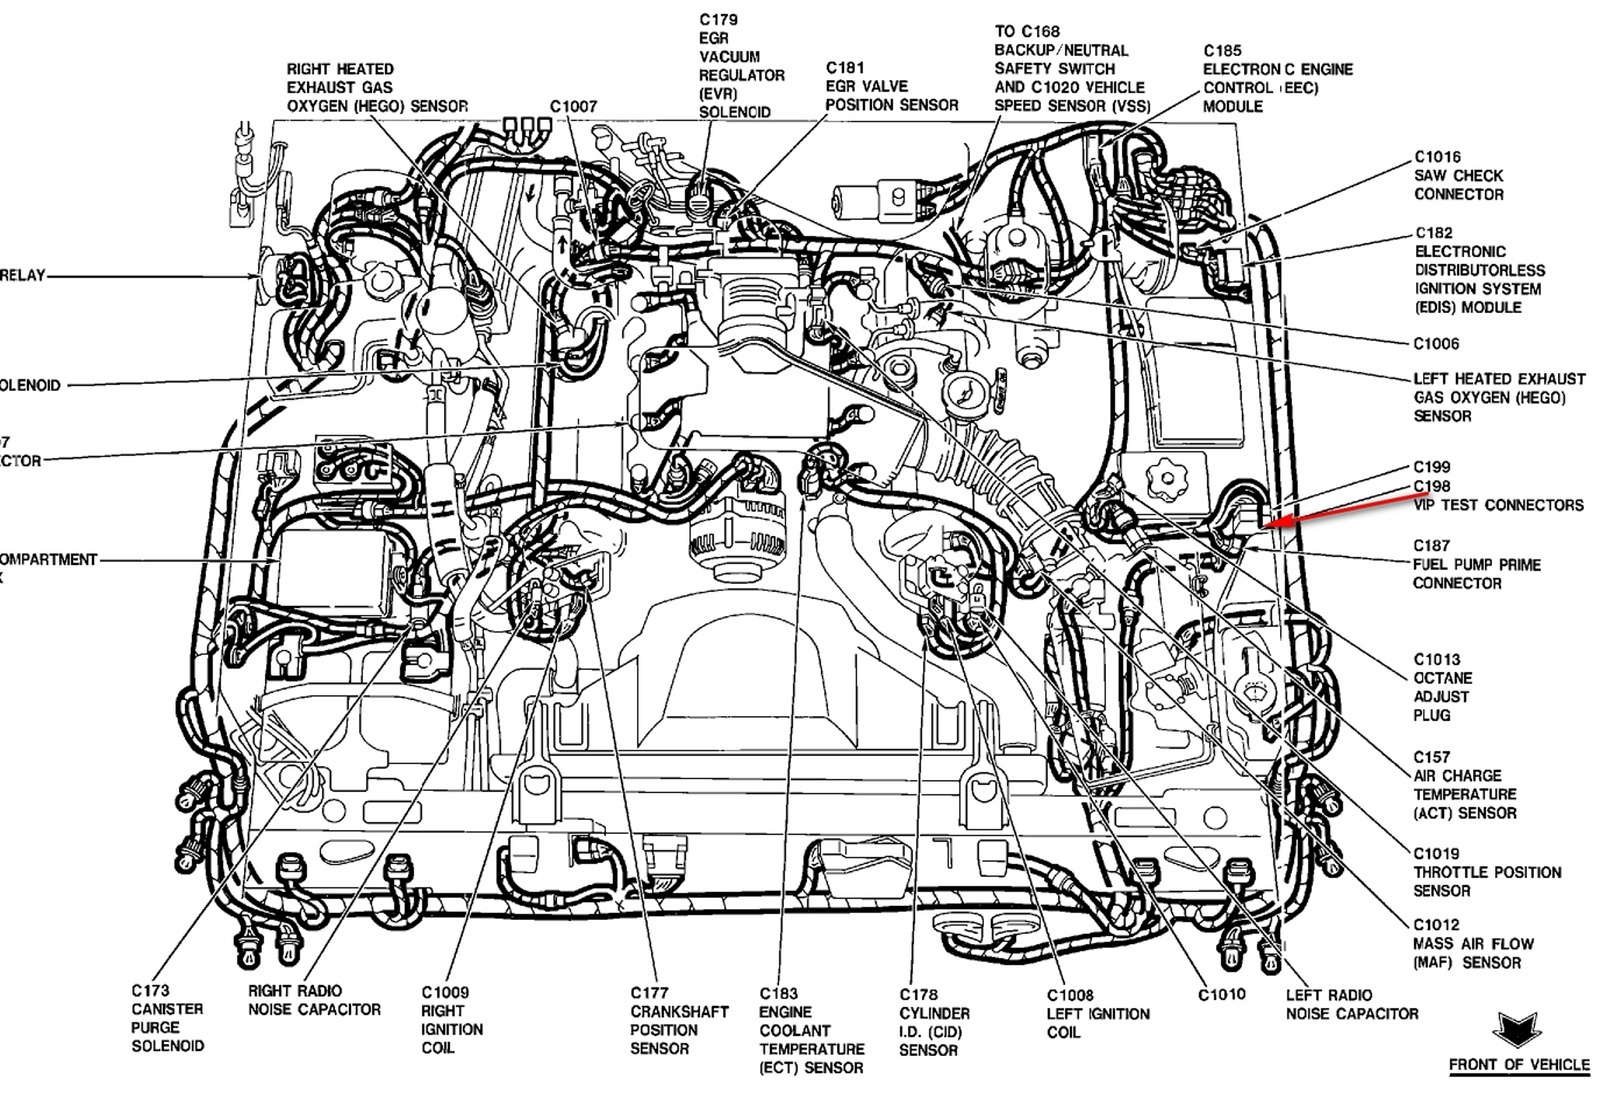 08 Dts 4 6 Engine Diagram Electrical Wiring Ford Oil System 2003 Cadillac Portal Rh 1 Kaminari Music De 46 Liter